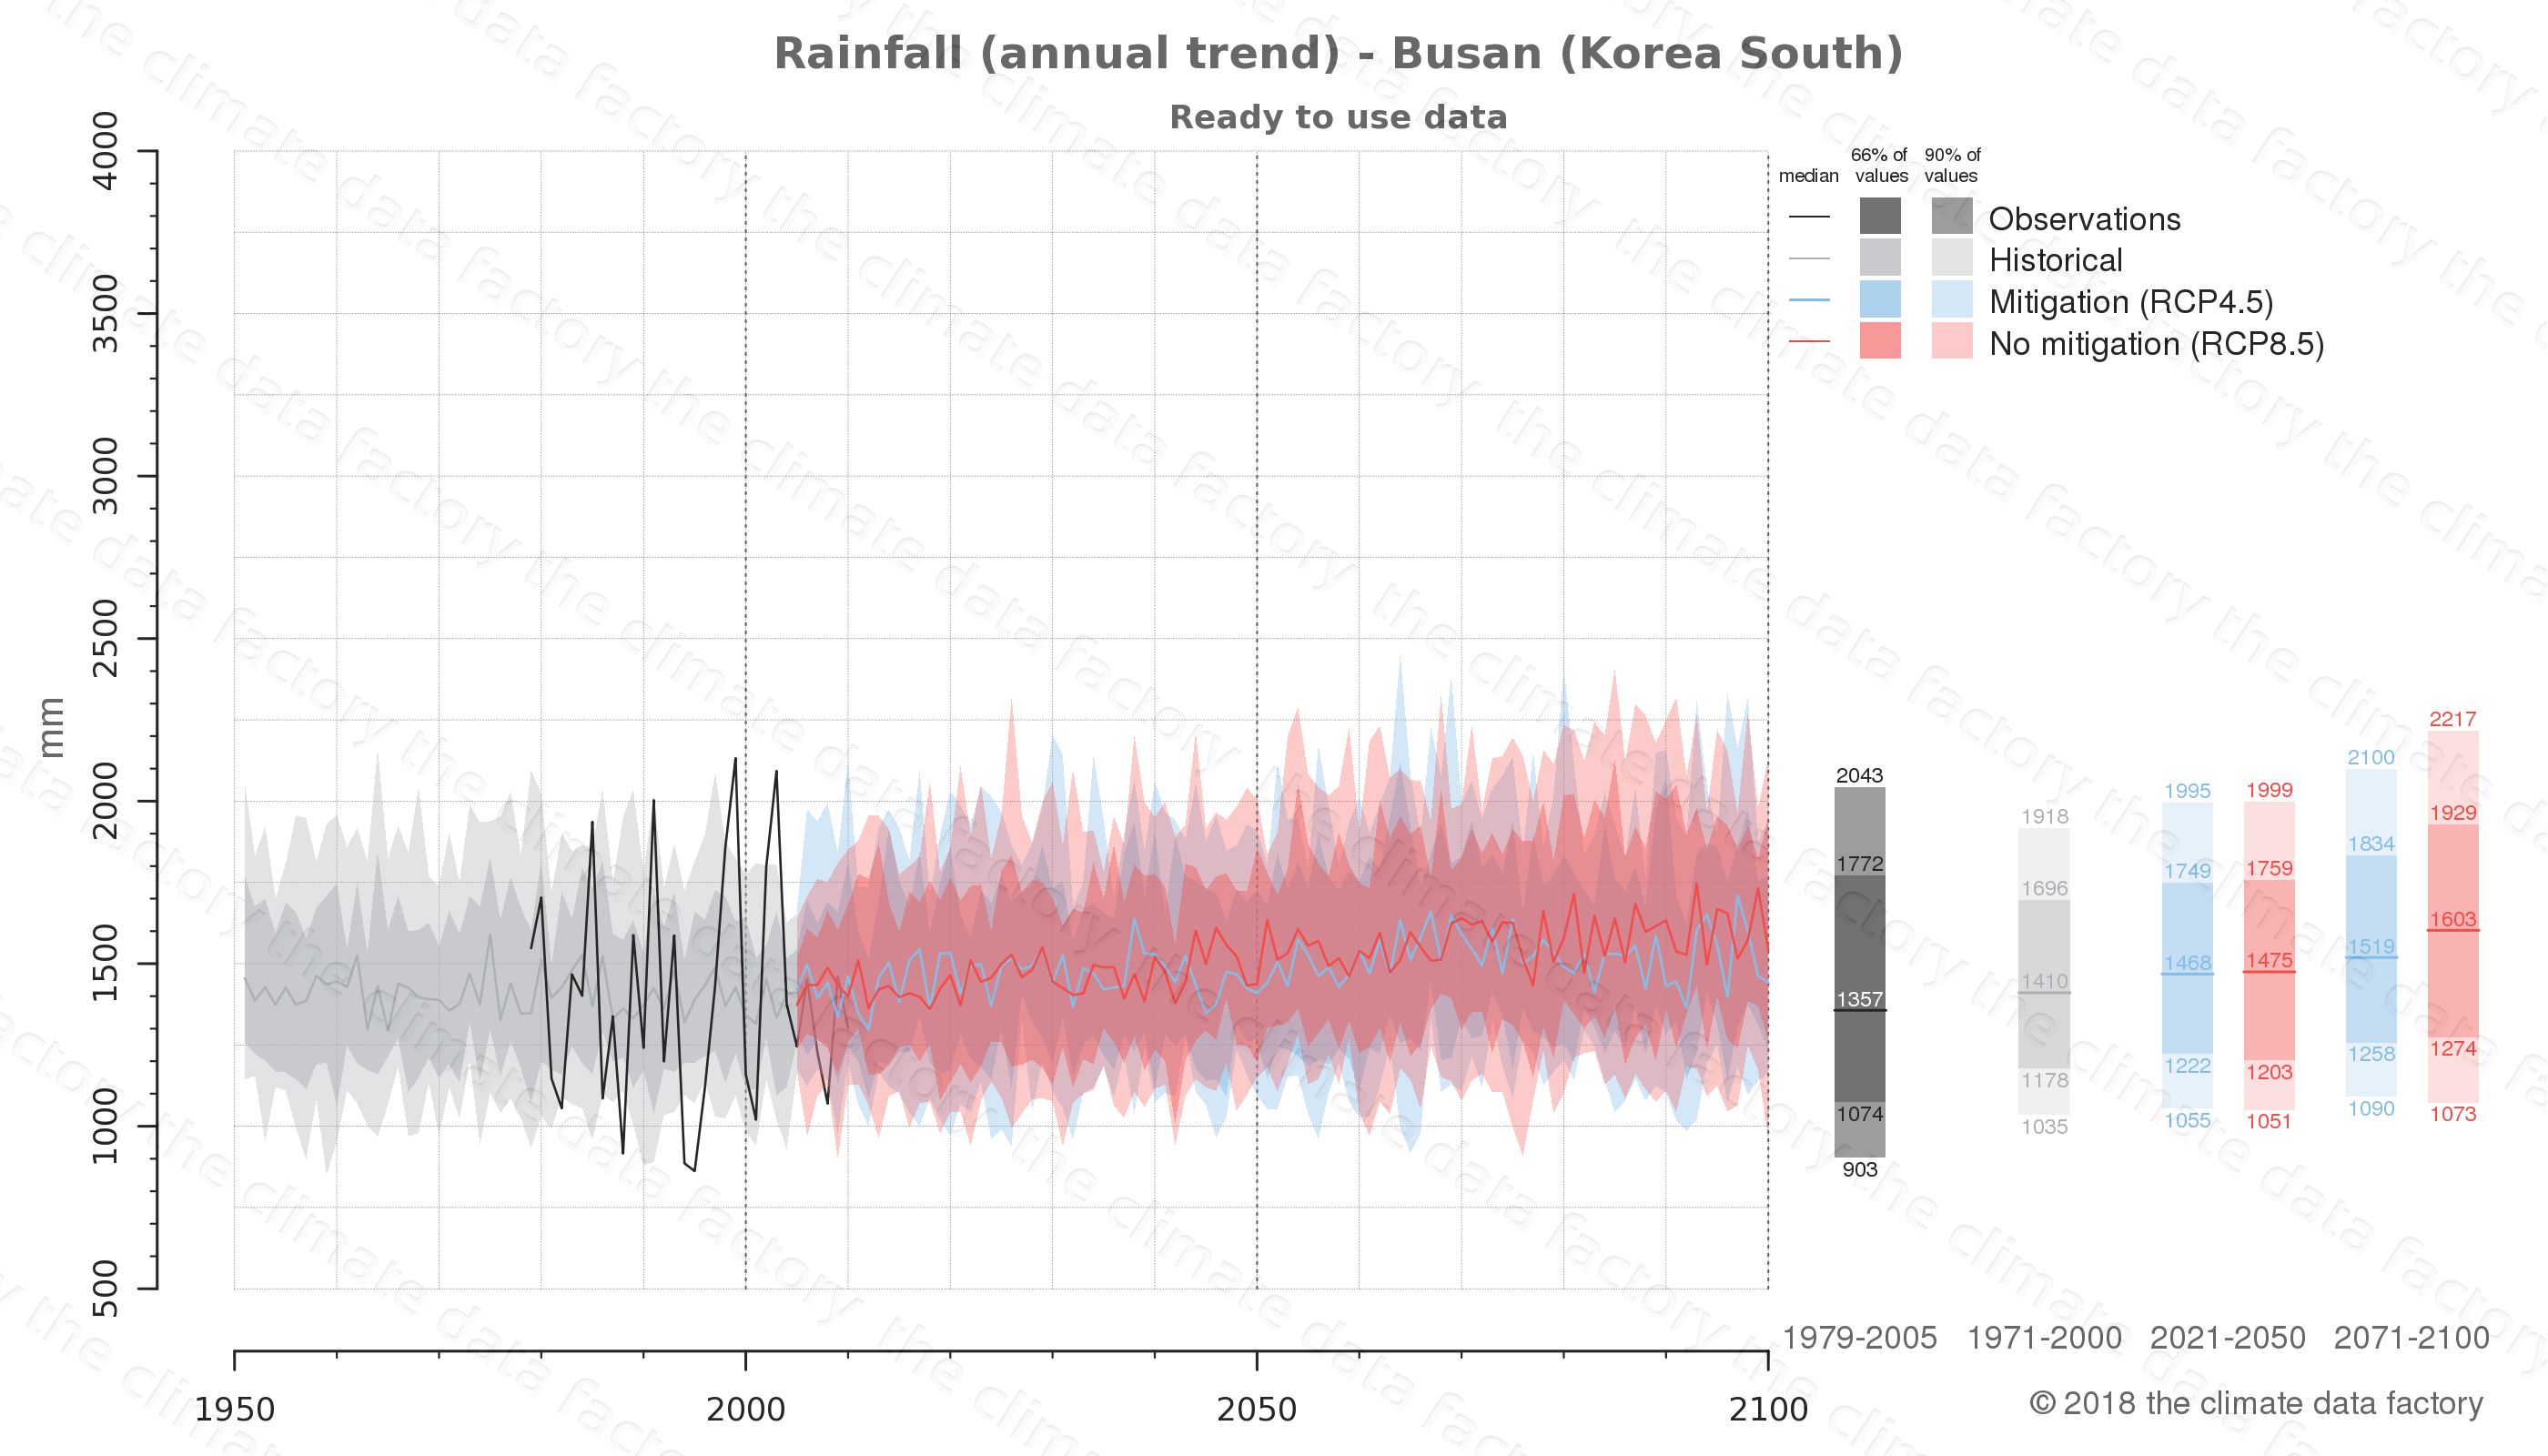 climate change data policy adaptation climate graph city data rainfall busan south korea